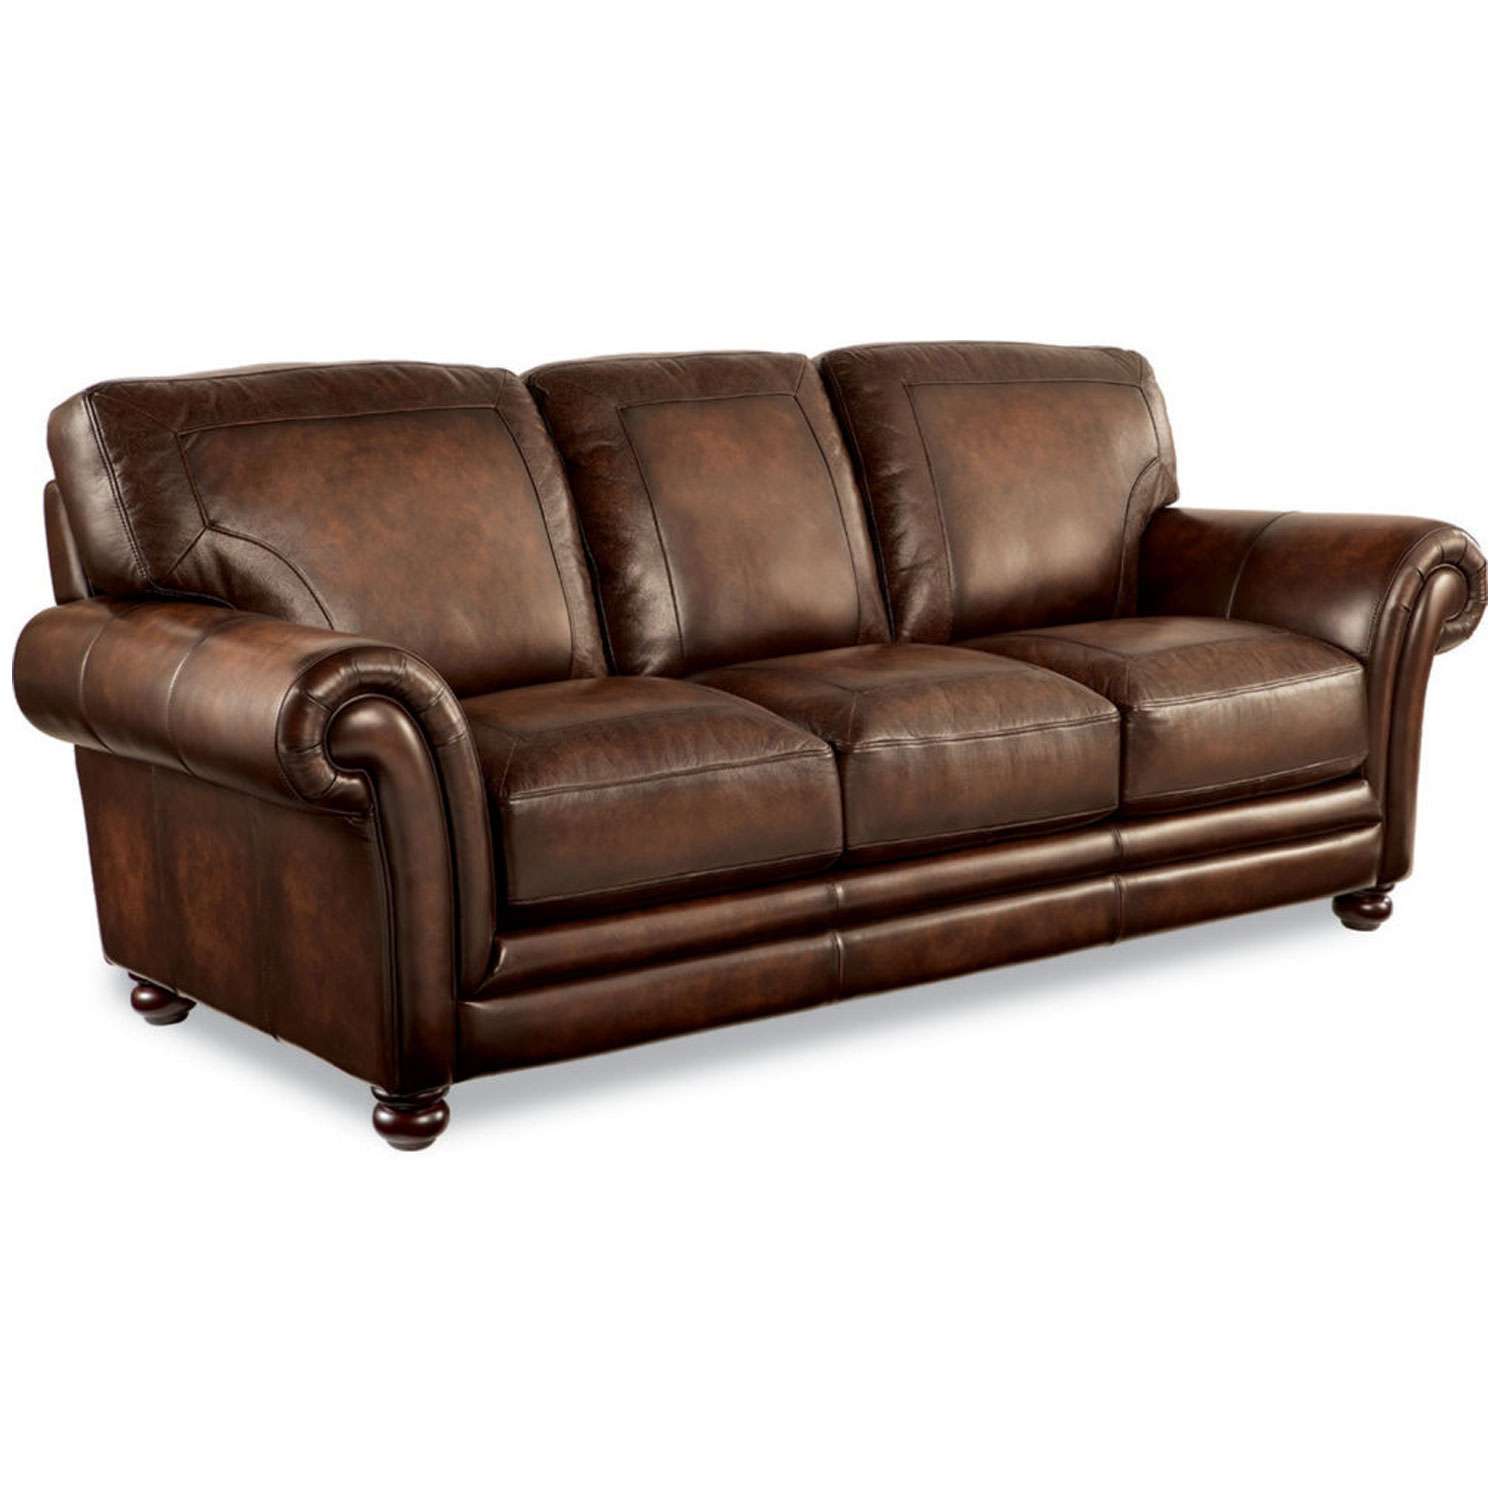 Brown Real Leather Couch Lazboy 710 805 William Signature Stationary Leather Sofa